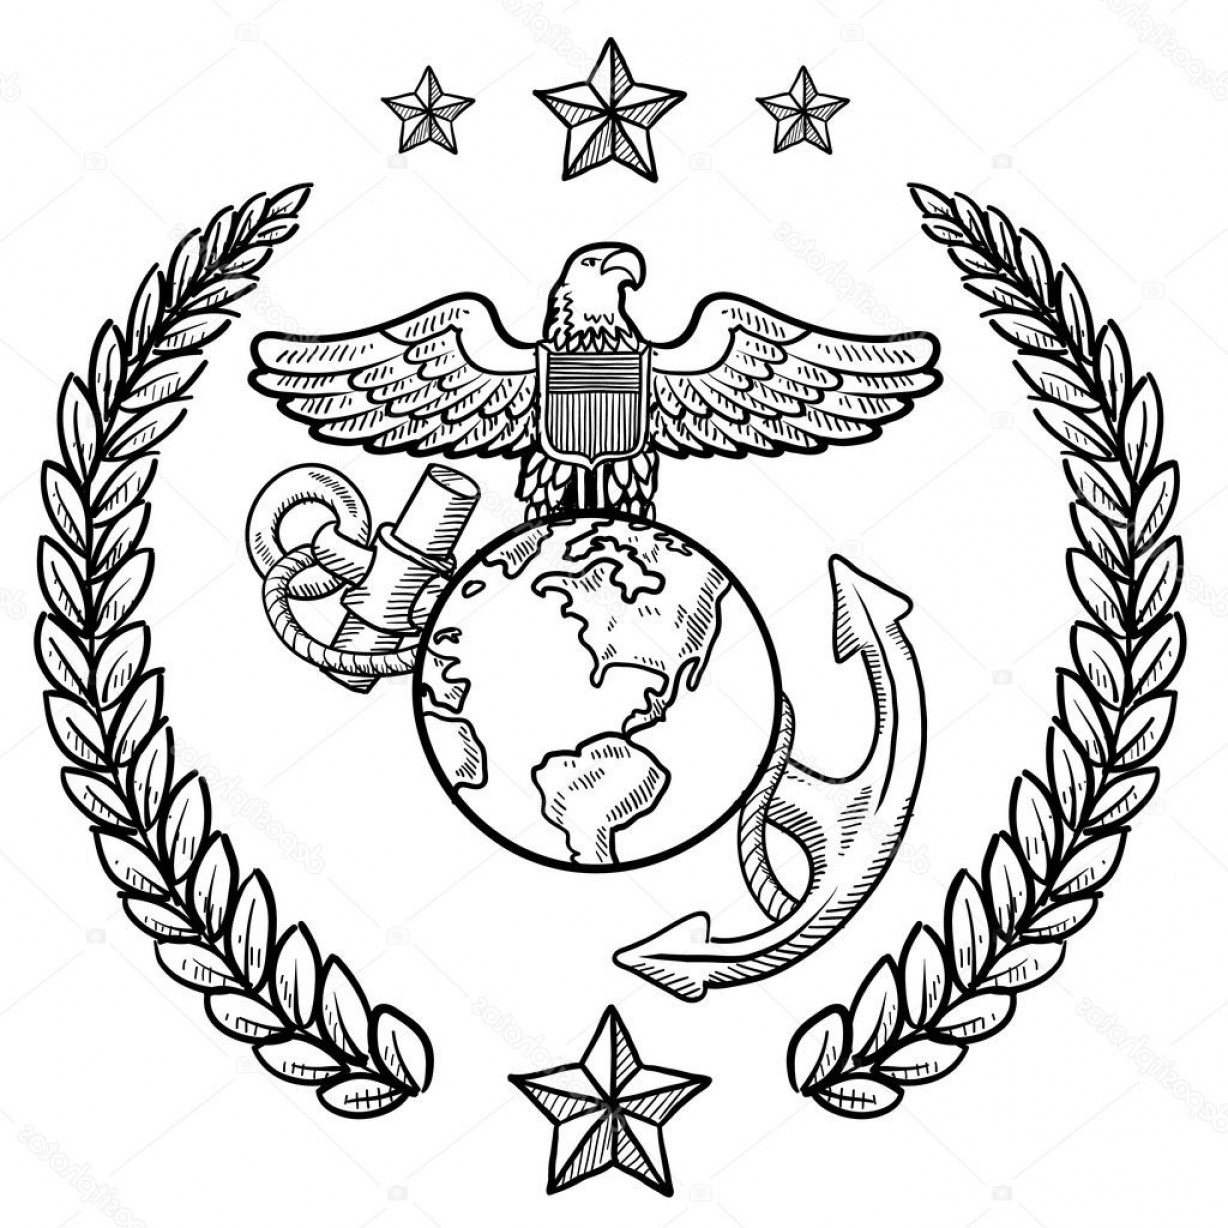 1228x1228 Stock Illustration Us Marine Corps Military Insignia Shopatcloth